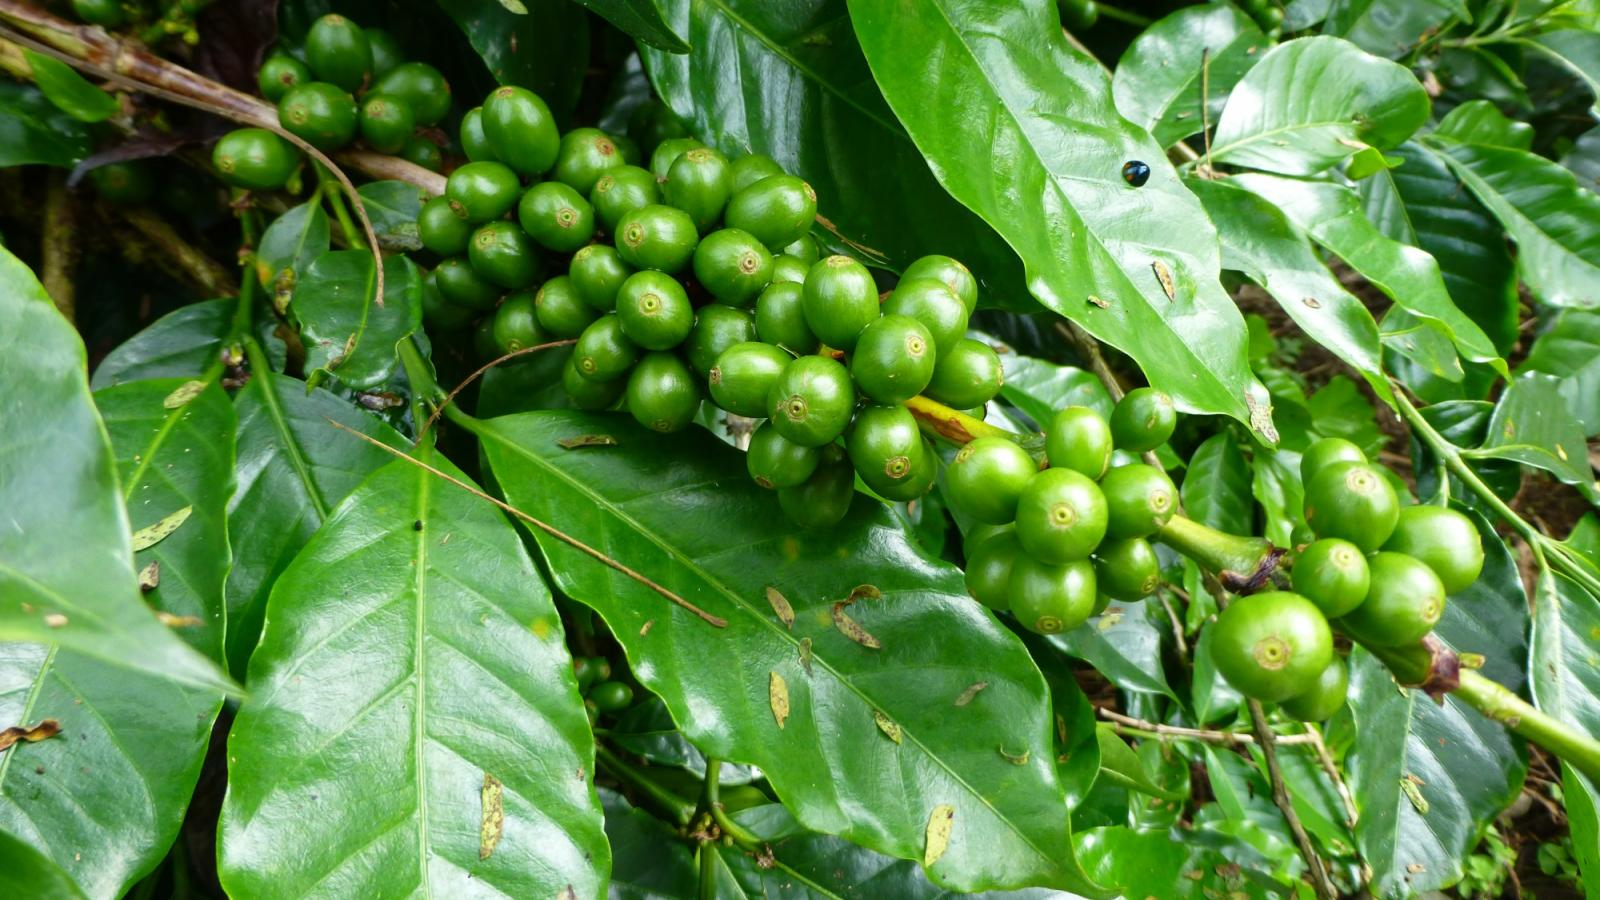 coffee cherries on plant